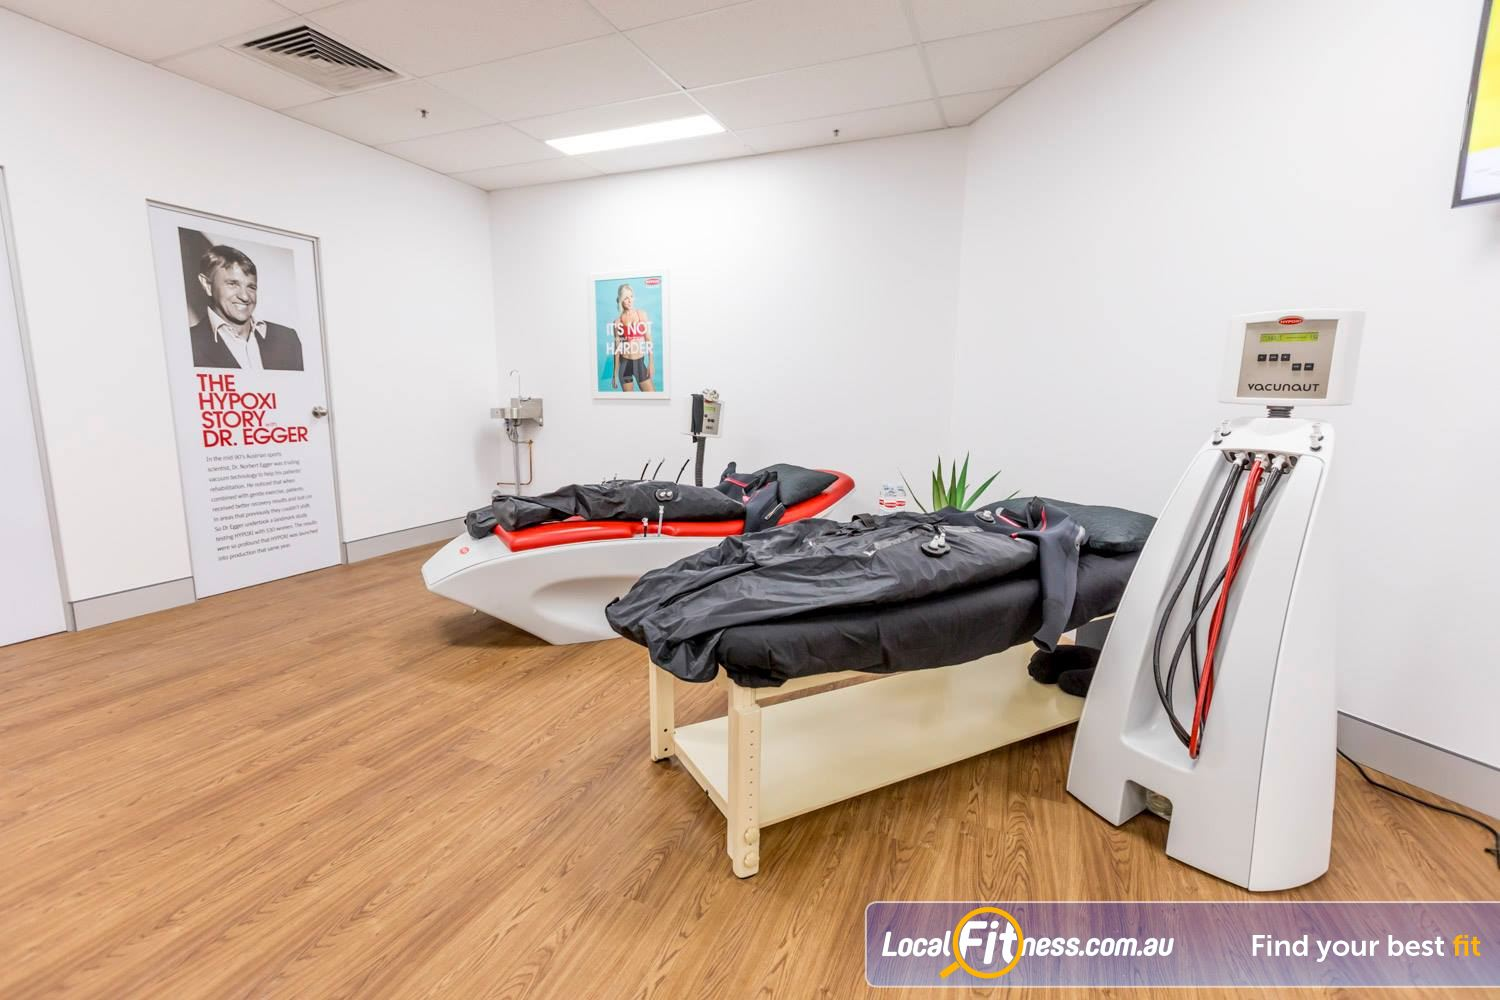 HYPOXI Weight Loss Jindalee Help your body work smarter, not harder in our HYPOXI Jindalee weight loss studio.